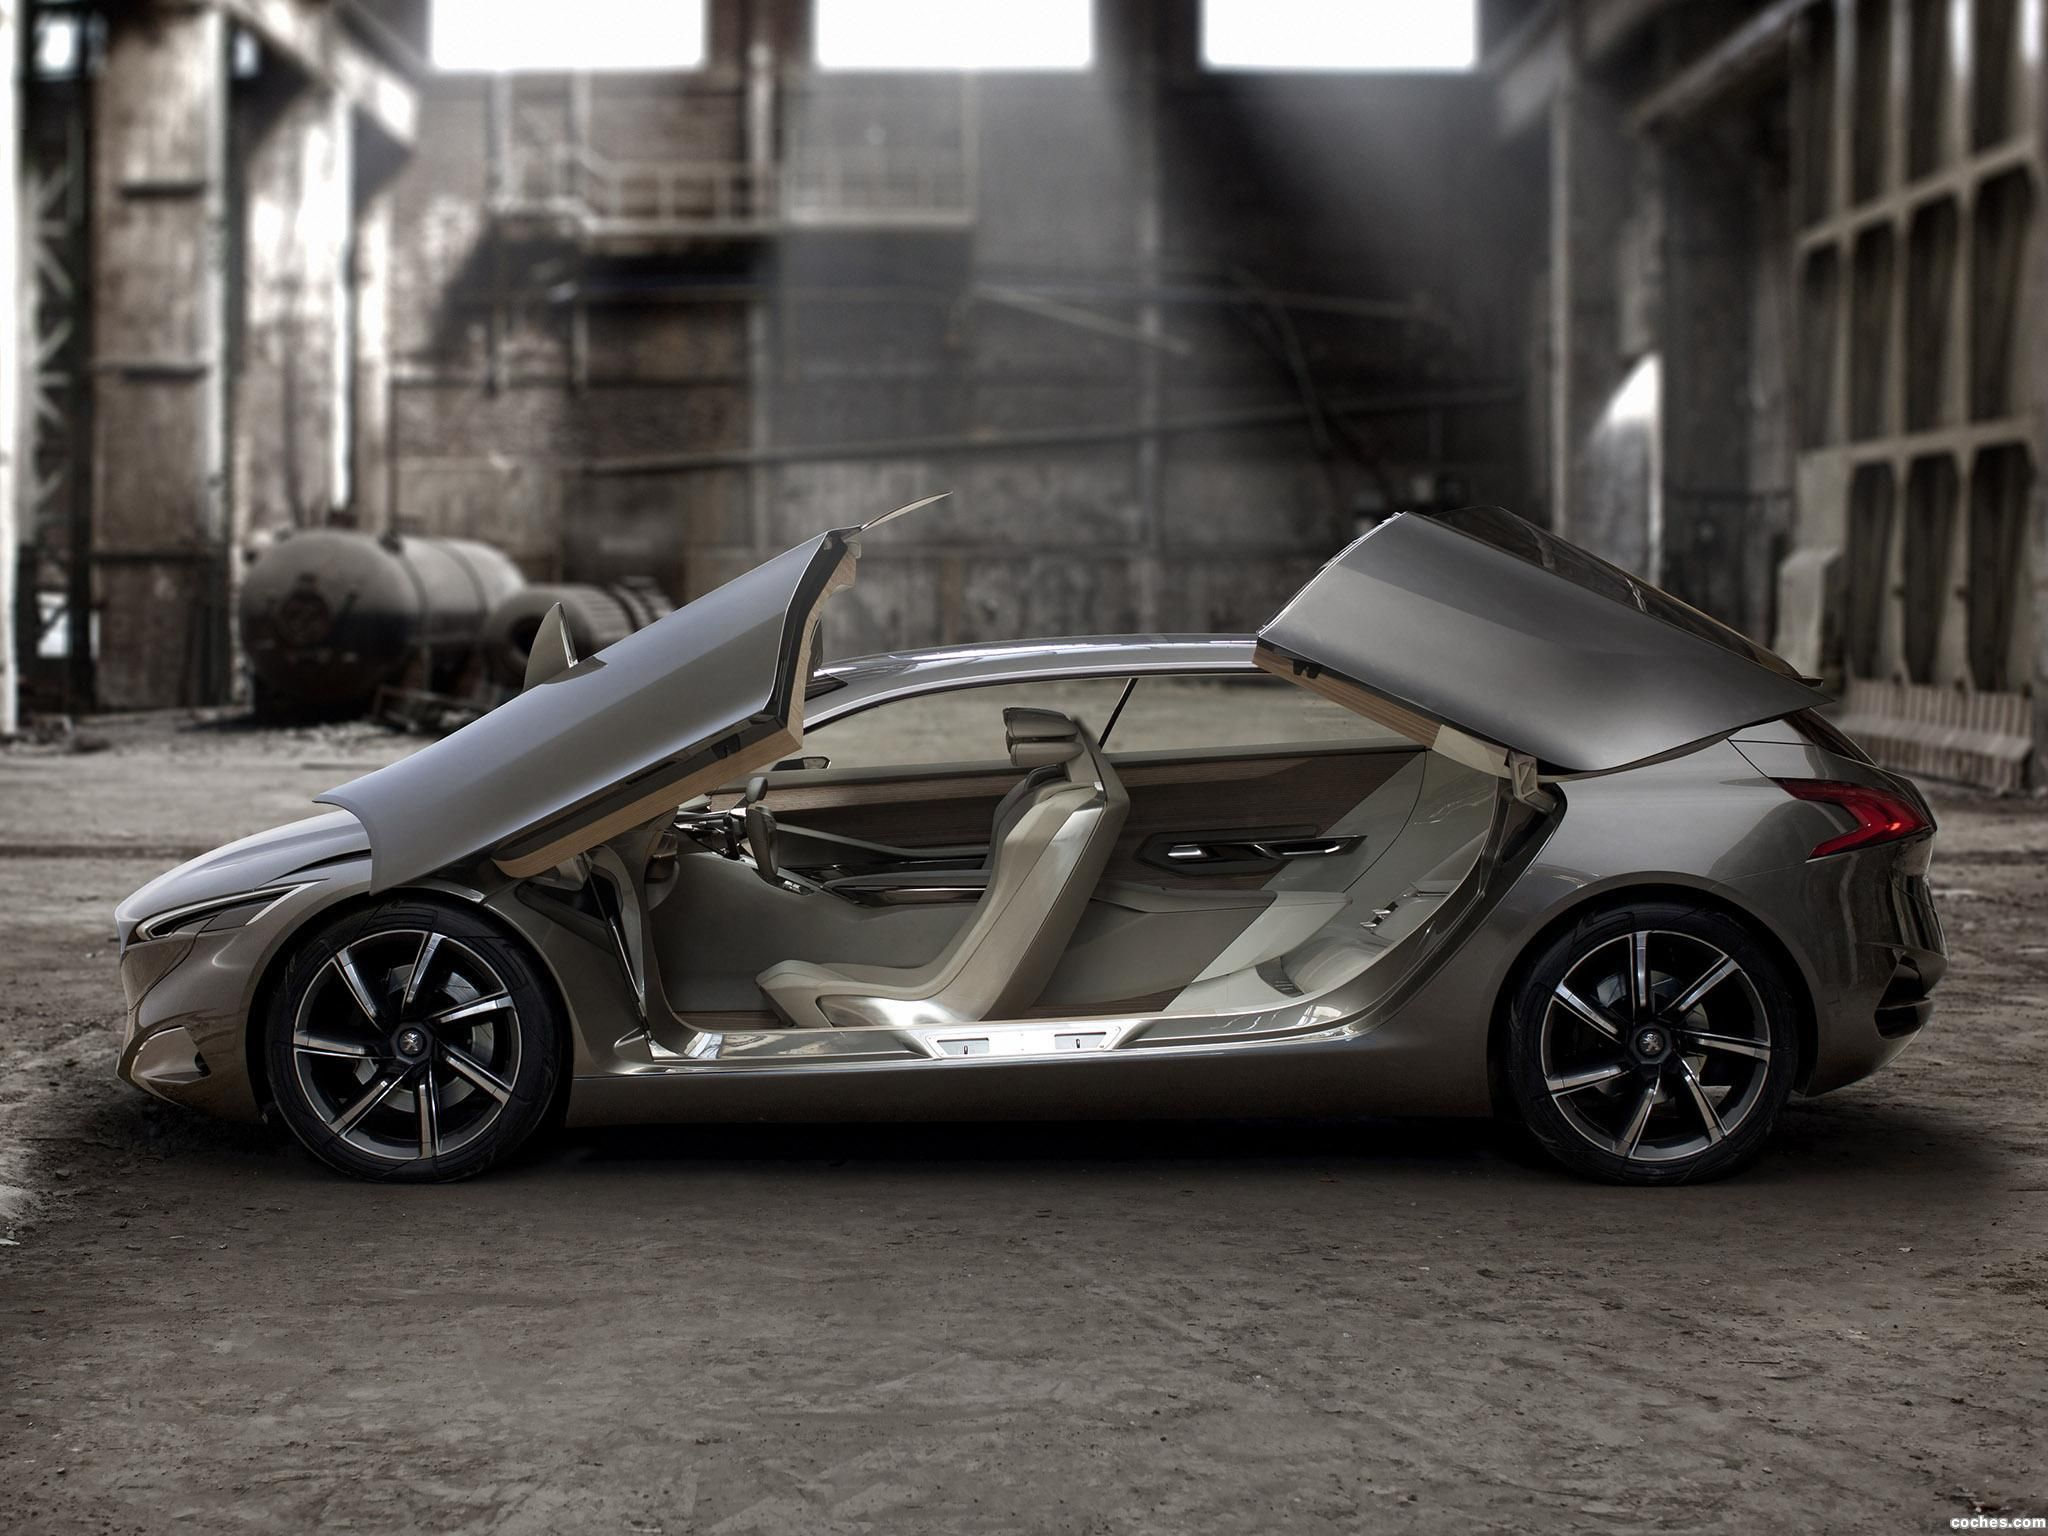 Explore Concept Cars, Peugeot, And More!